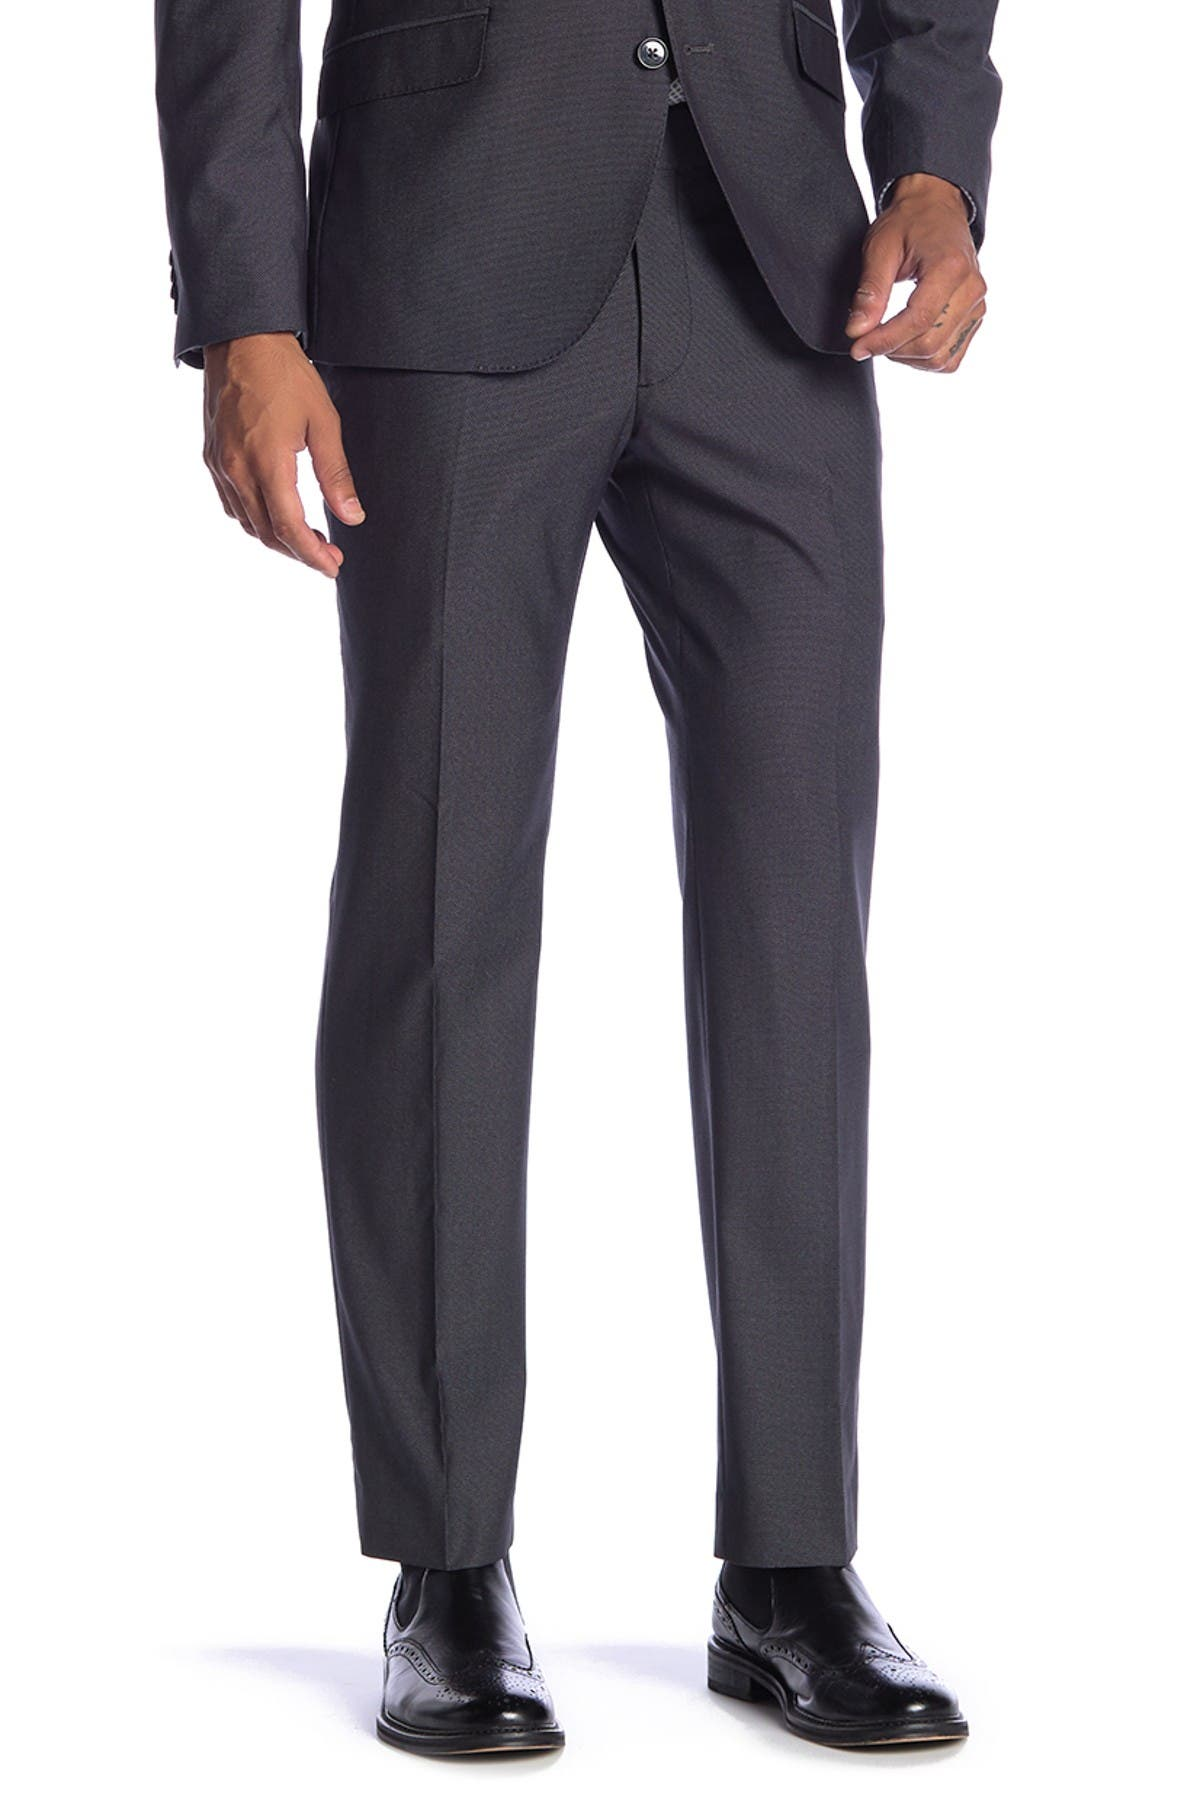 "Image of SAVILE ROW CO Essex Charcoal Slim Fit Suit Separate Pants - 30-34"" Inseam"